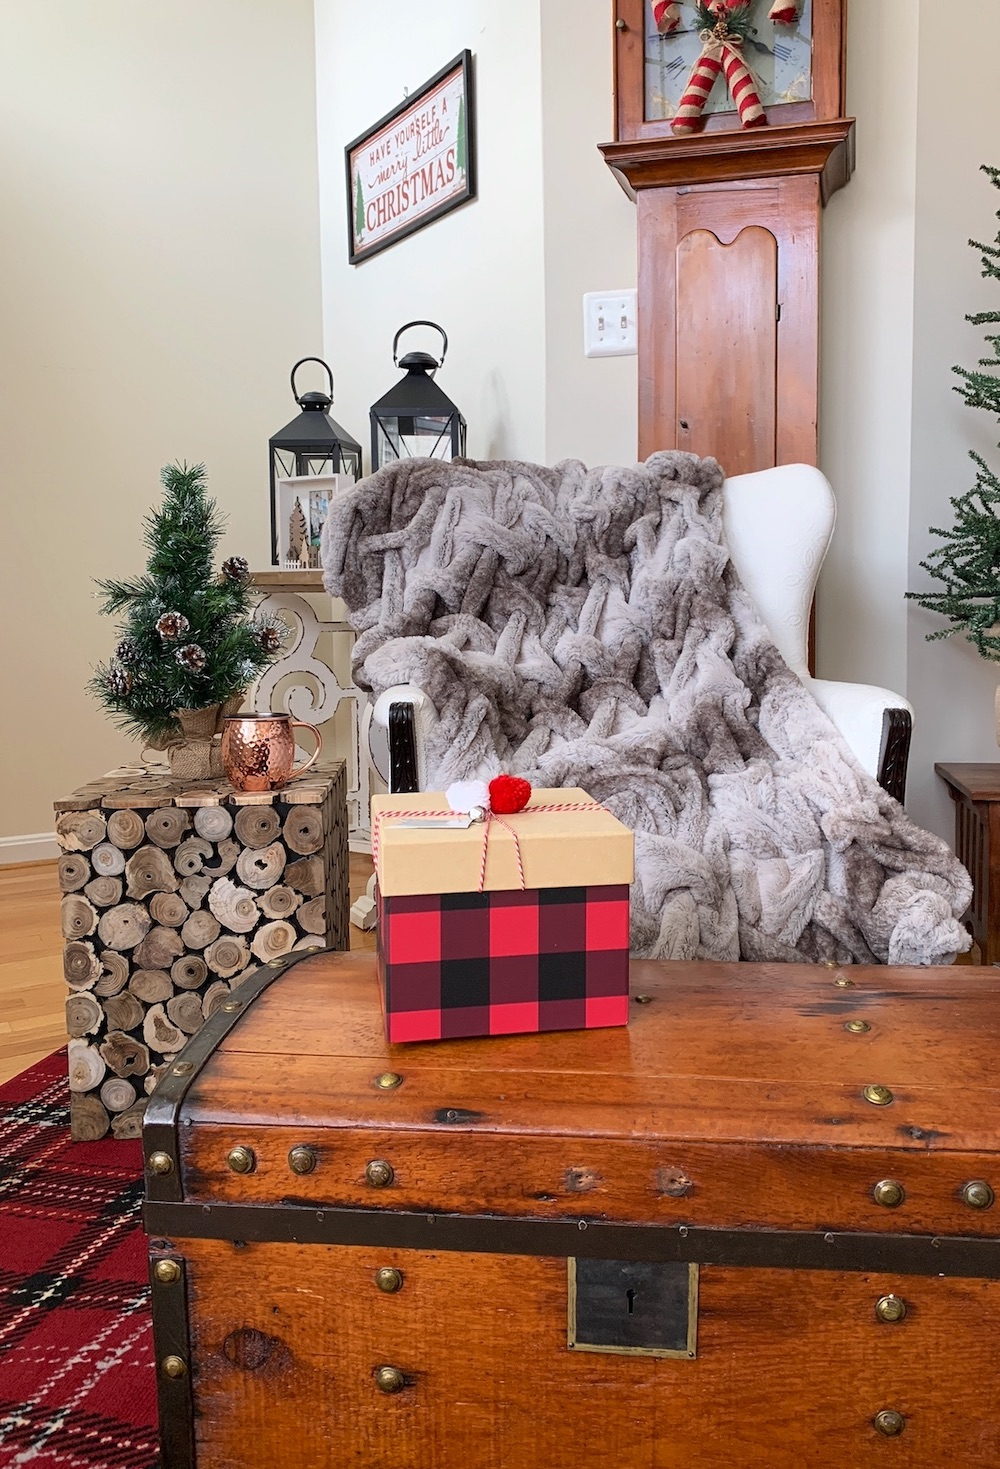 Cabin Decor Relax and Warm Up #Decor #ChristmasDecor #RusticChristmas #RusticChristmasDecor #Christmas ChristmasCabin #ChristmasLodge #ChristmasAccents #HolidayDecor